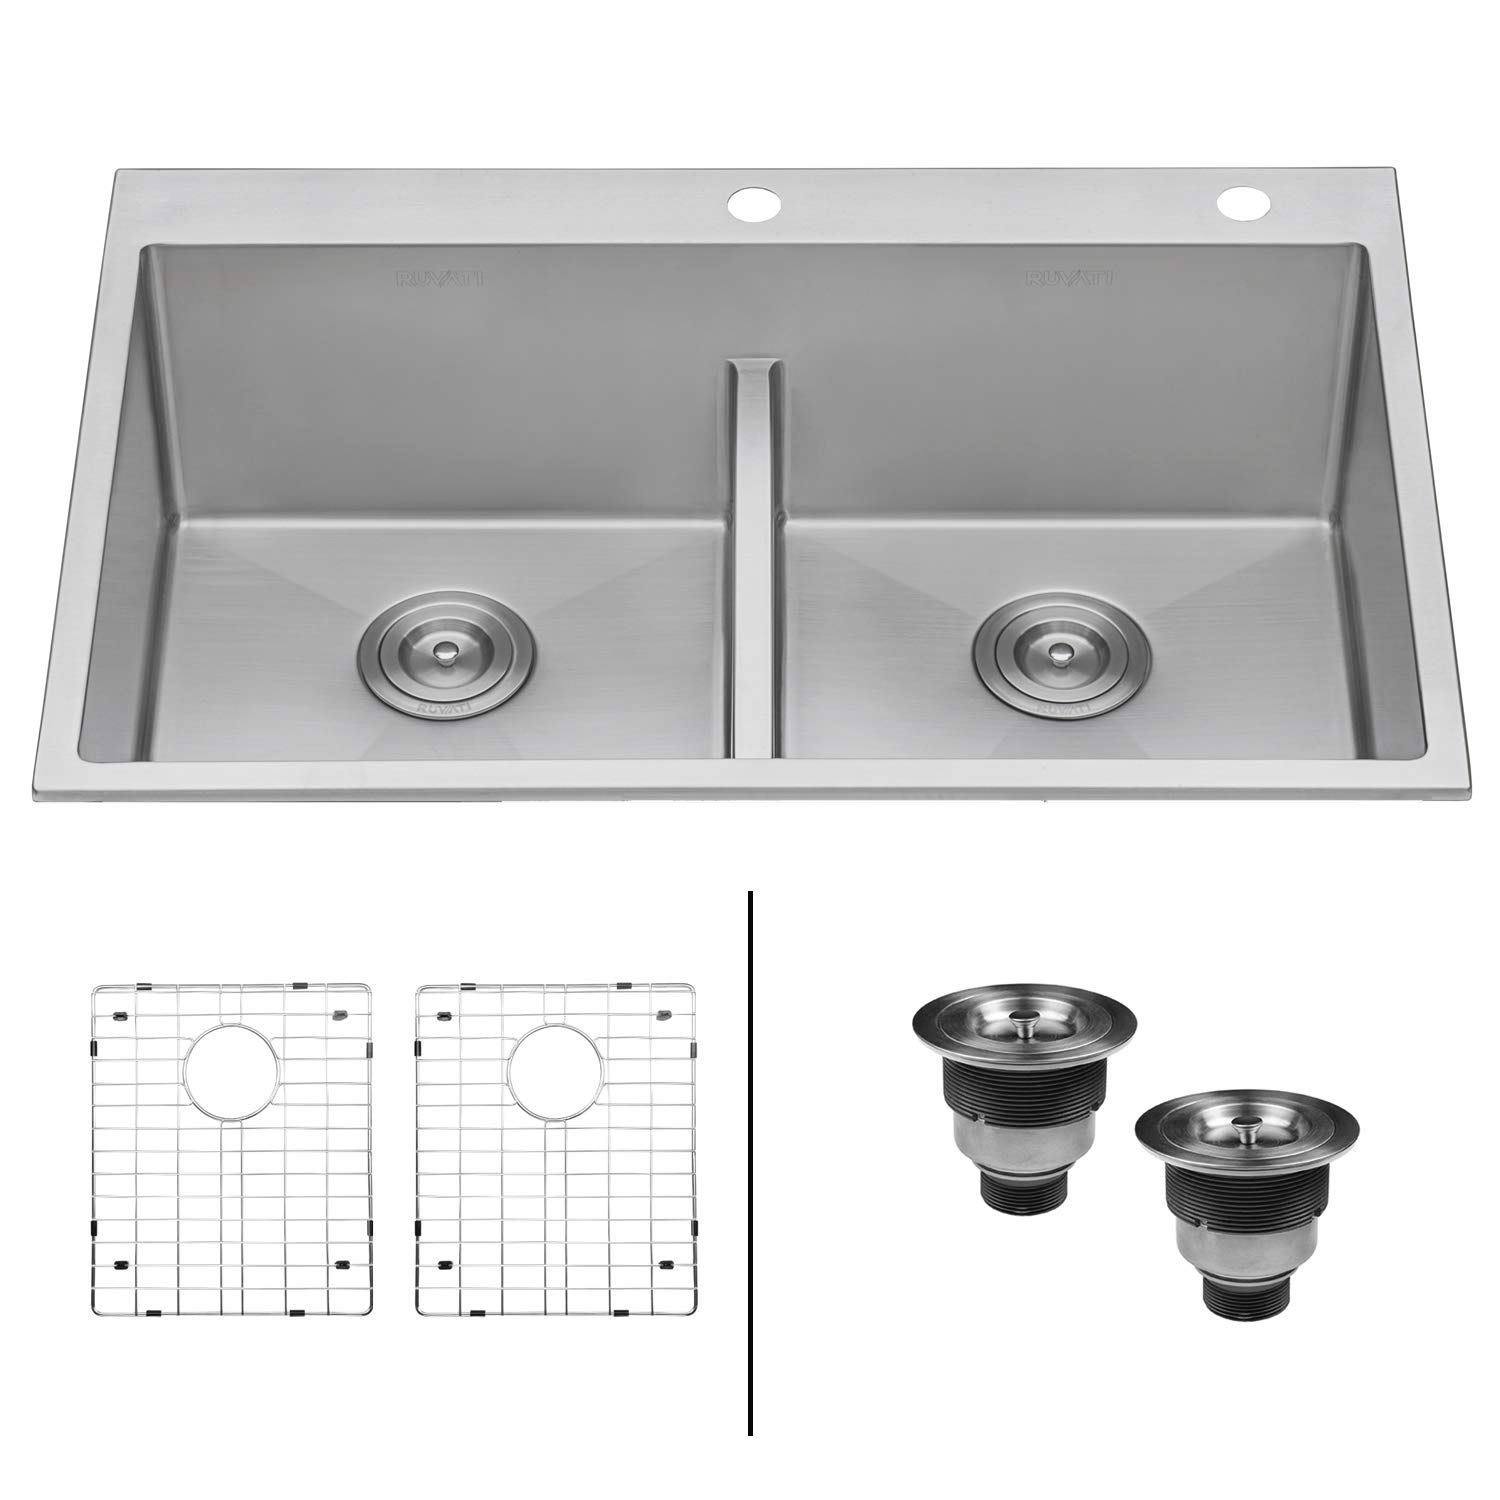 Ruvati 33 Inch Drop In Low Divide Tight Radius 50 50 Double Bowl 16 Gauge Topmount Kitchen Sink Rvh8051 Sink Stainless Steel Kitchen Sink Ledge Kitchen Sinks